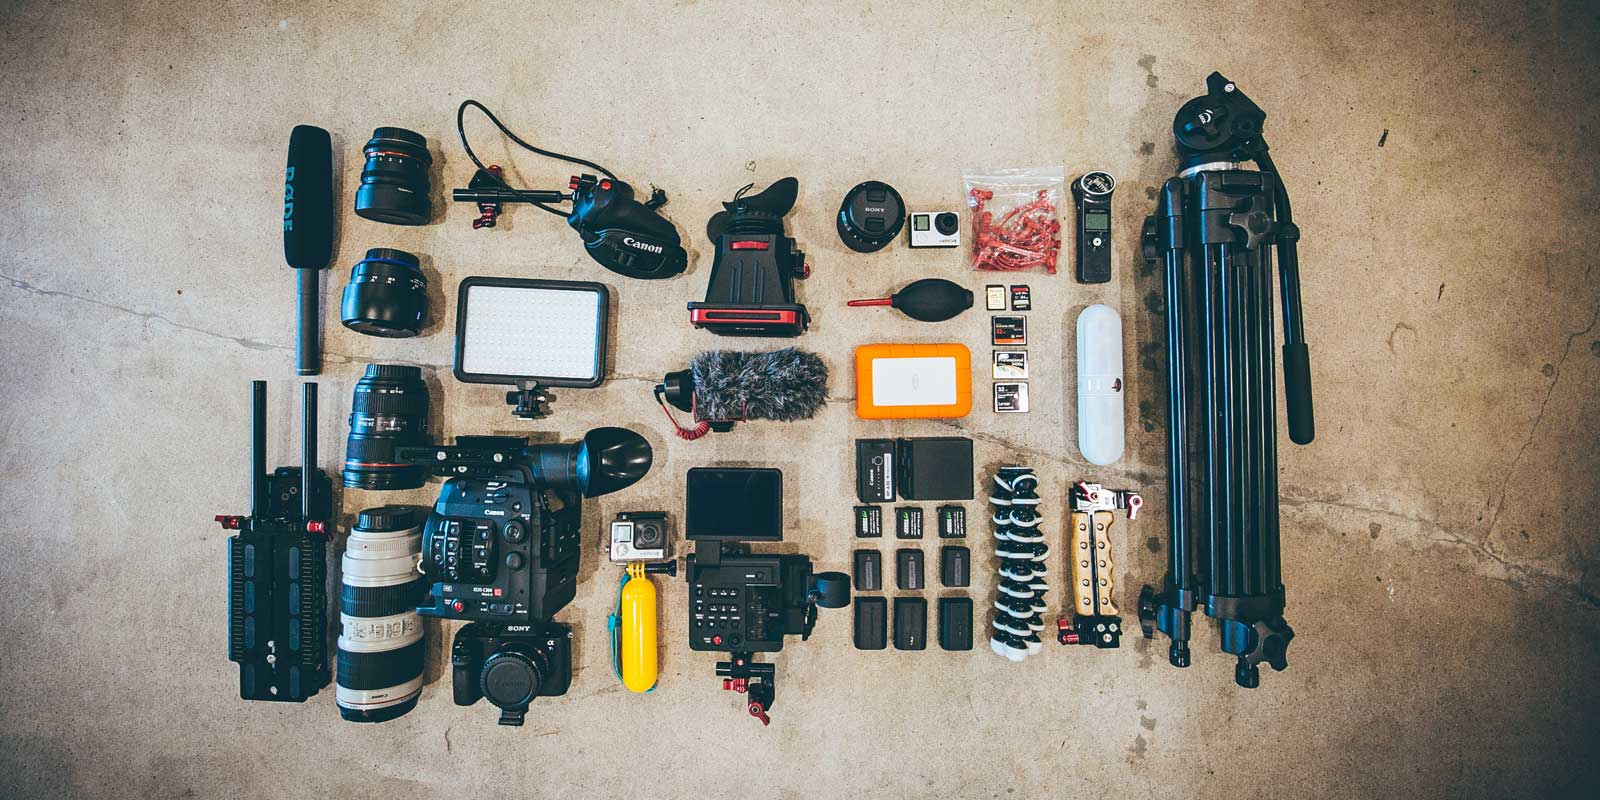 Don't show up to a Disney World park with a photography kit like this. No one needs this much gear for a day at the park. Security will obviously think you're there to get photos and footage for commercial purposes. Check out this post for a quick and easy guide to the camera rules at Disney World.